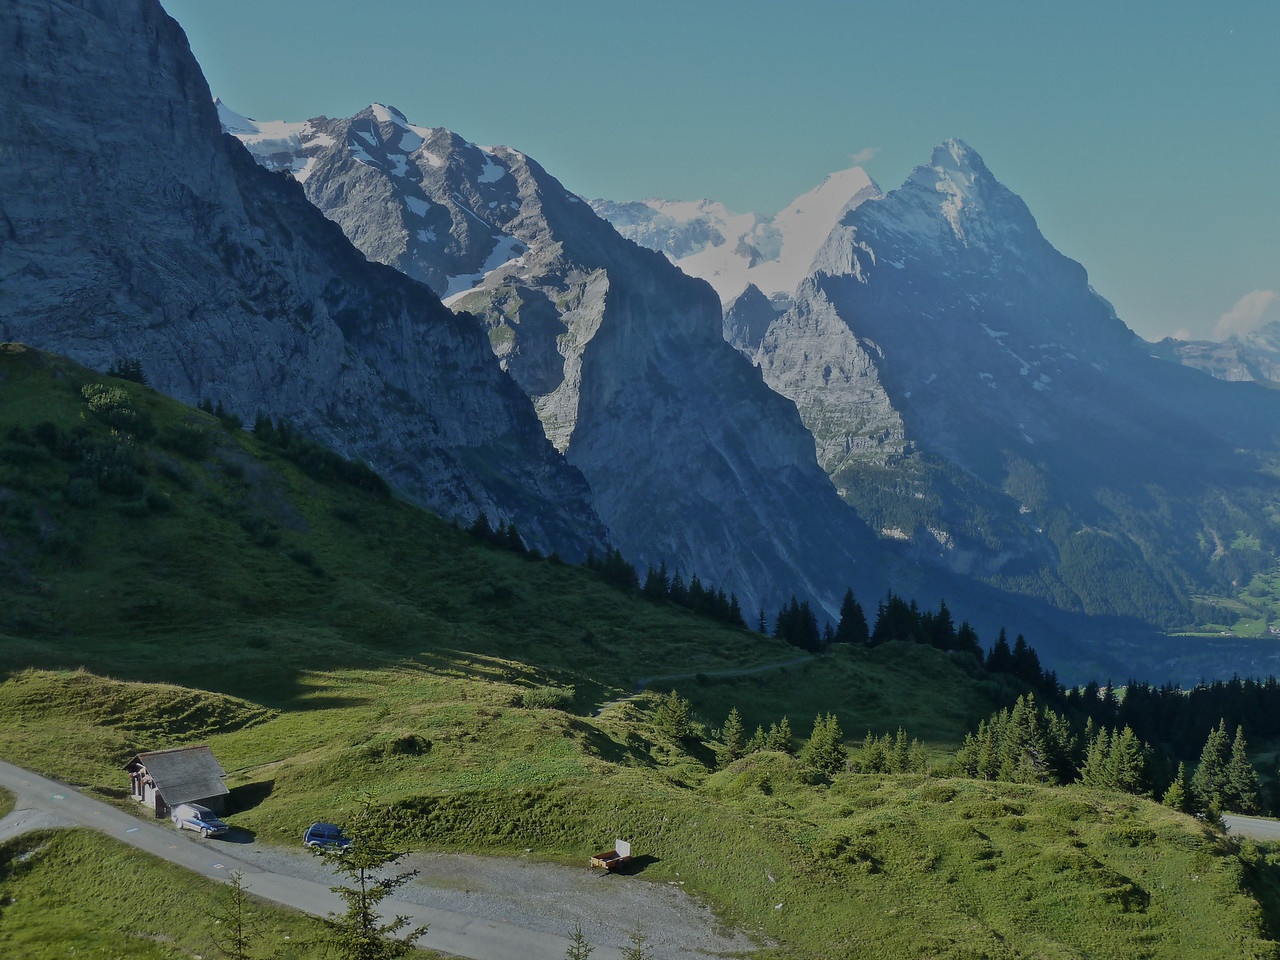 Getting closer to the mountain tops - Eiger on the right and Mönch next to it,